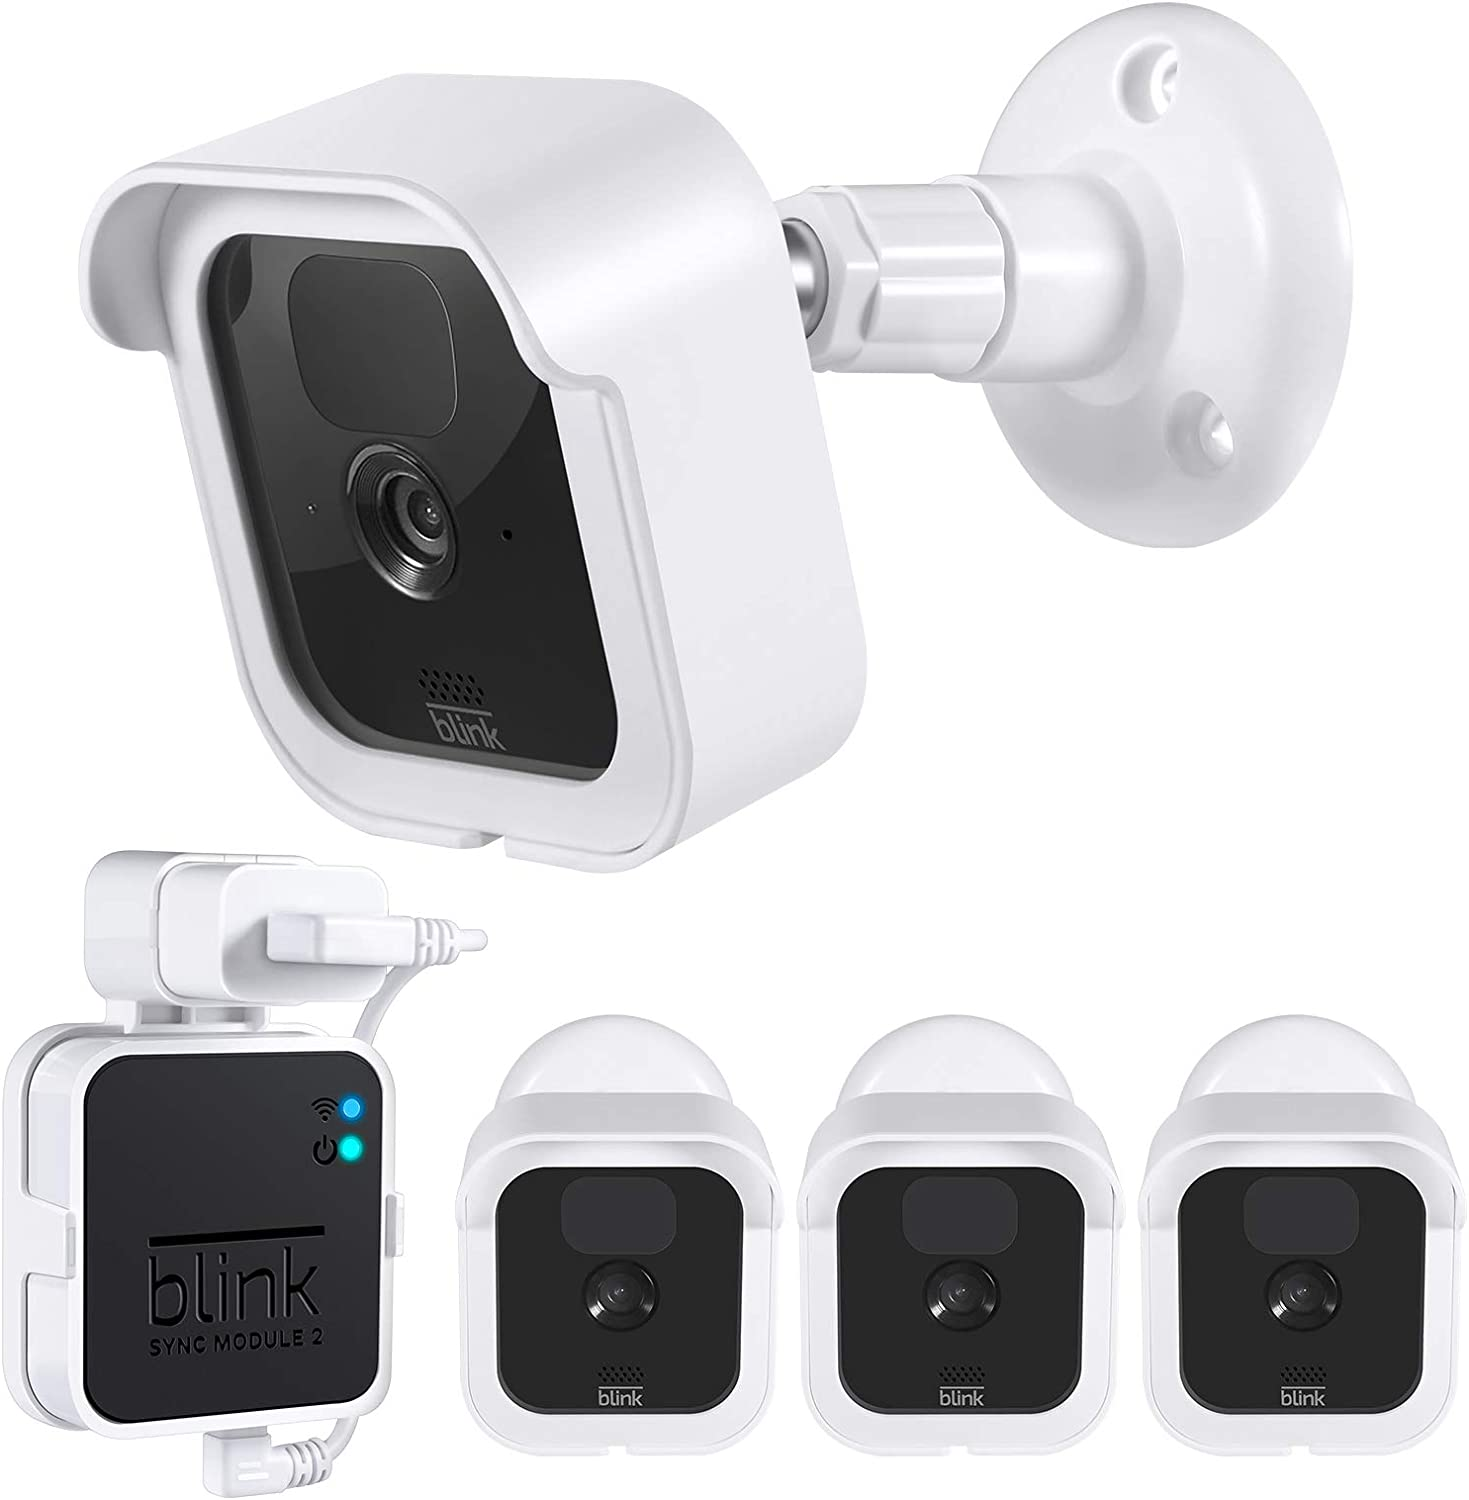 Aotnex Weatherproof Protective Housing Cover with Blink Sync Module 2 Outlet Mount for Blink Outdoor Indoor Home Security Camera System Wall Mounts compatible with Blink Outdoor Camera 3 Pack,White